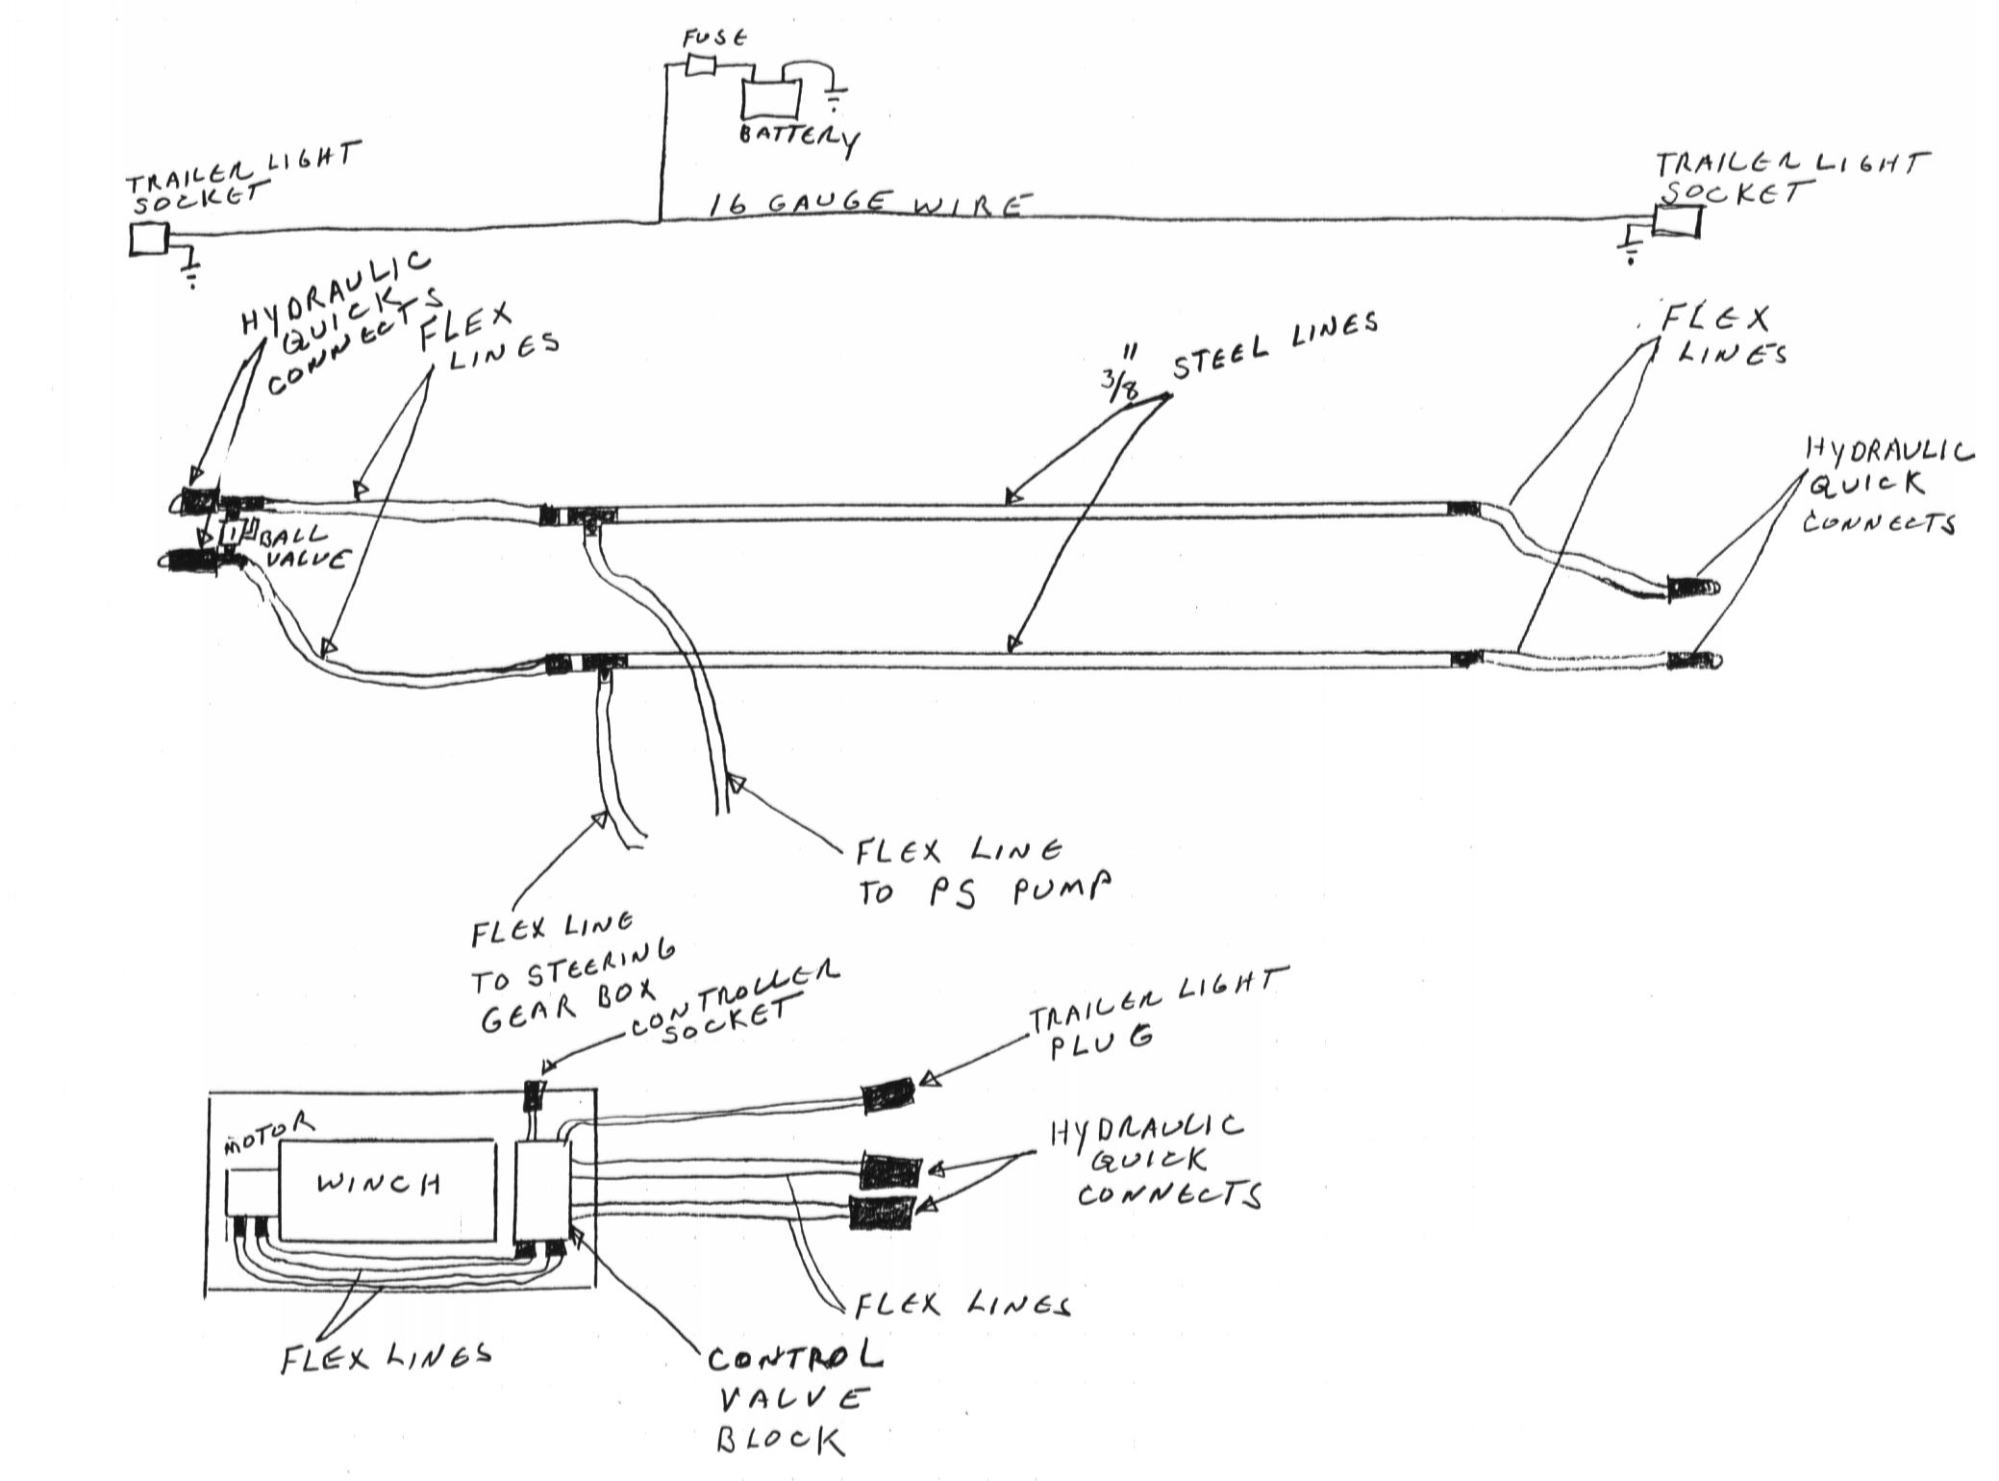 hight resolution of wiring diagram for winch on truck wiring diagram todayswiring diagram for winch on truck wiring library